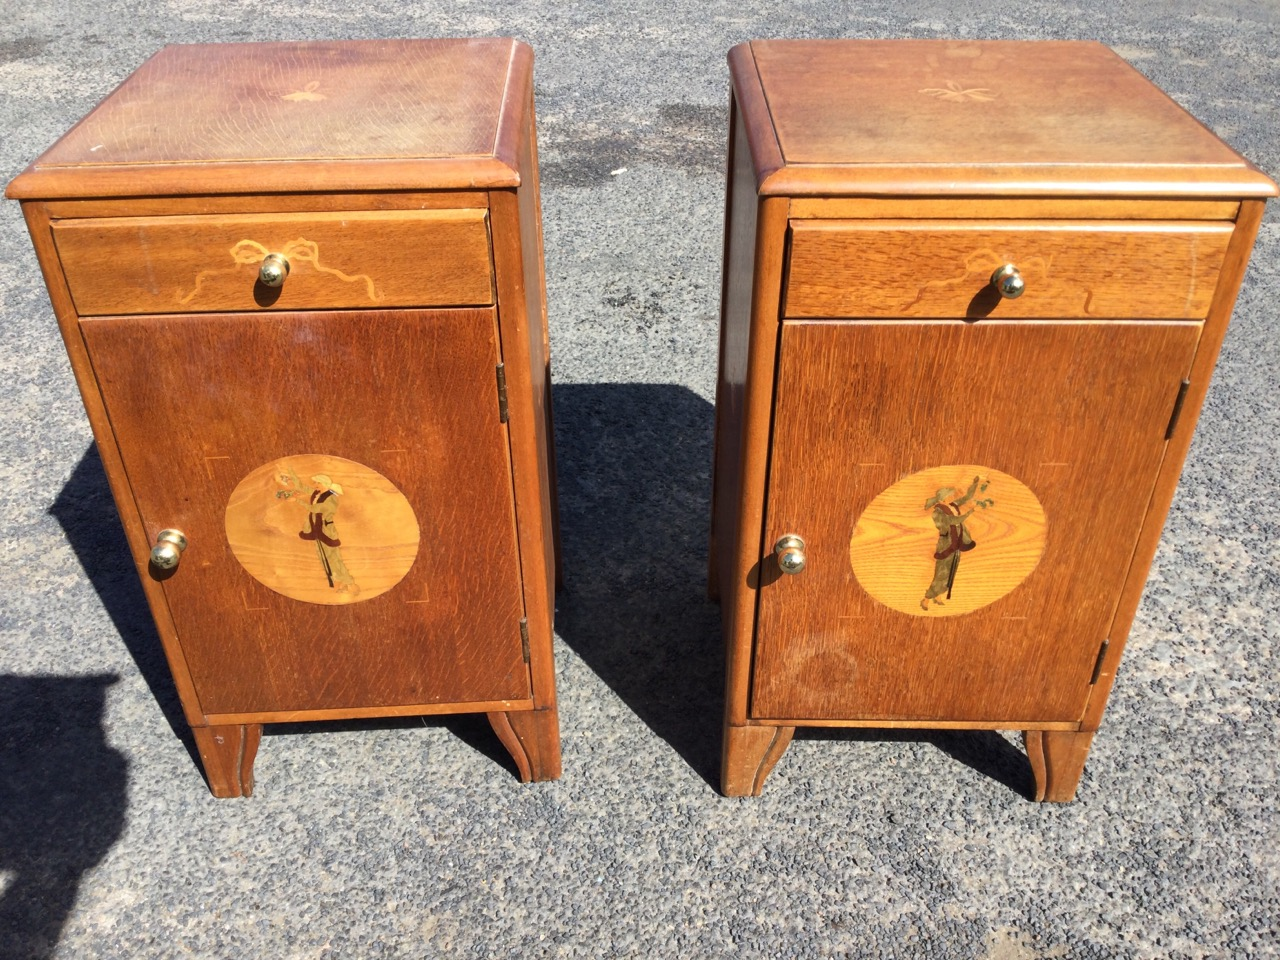 A pair of 1960s Ridgeway Cottage Industry oak bedside cabinets with marquetry by Colin Sawford, with